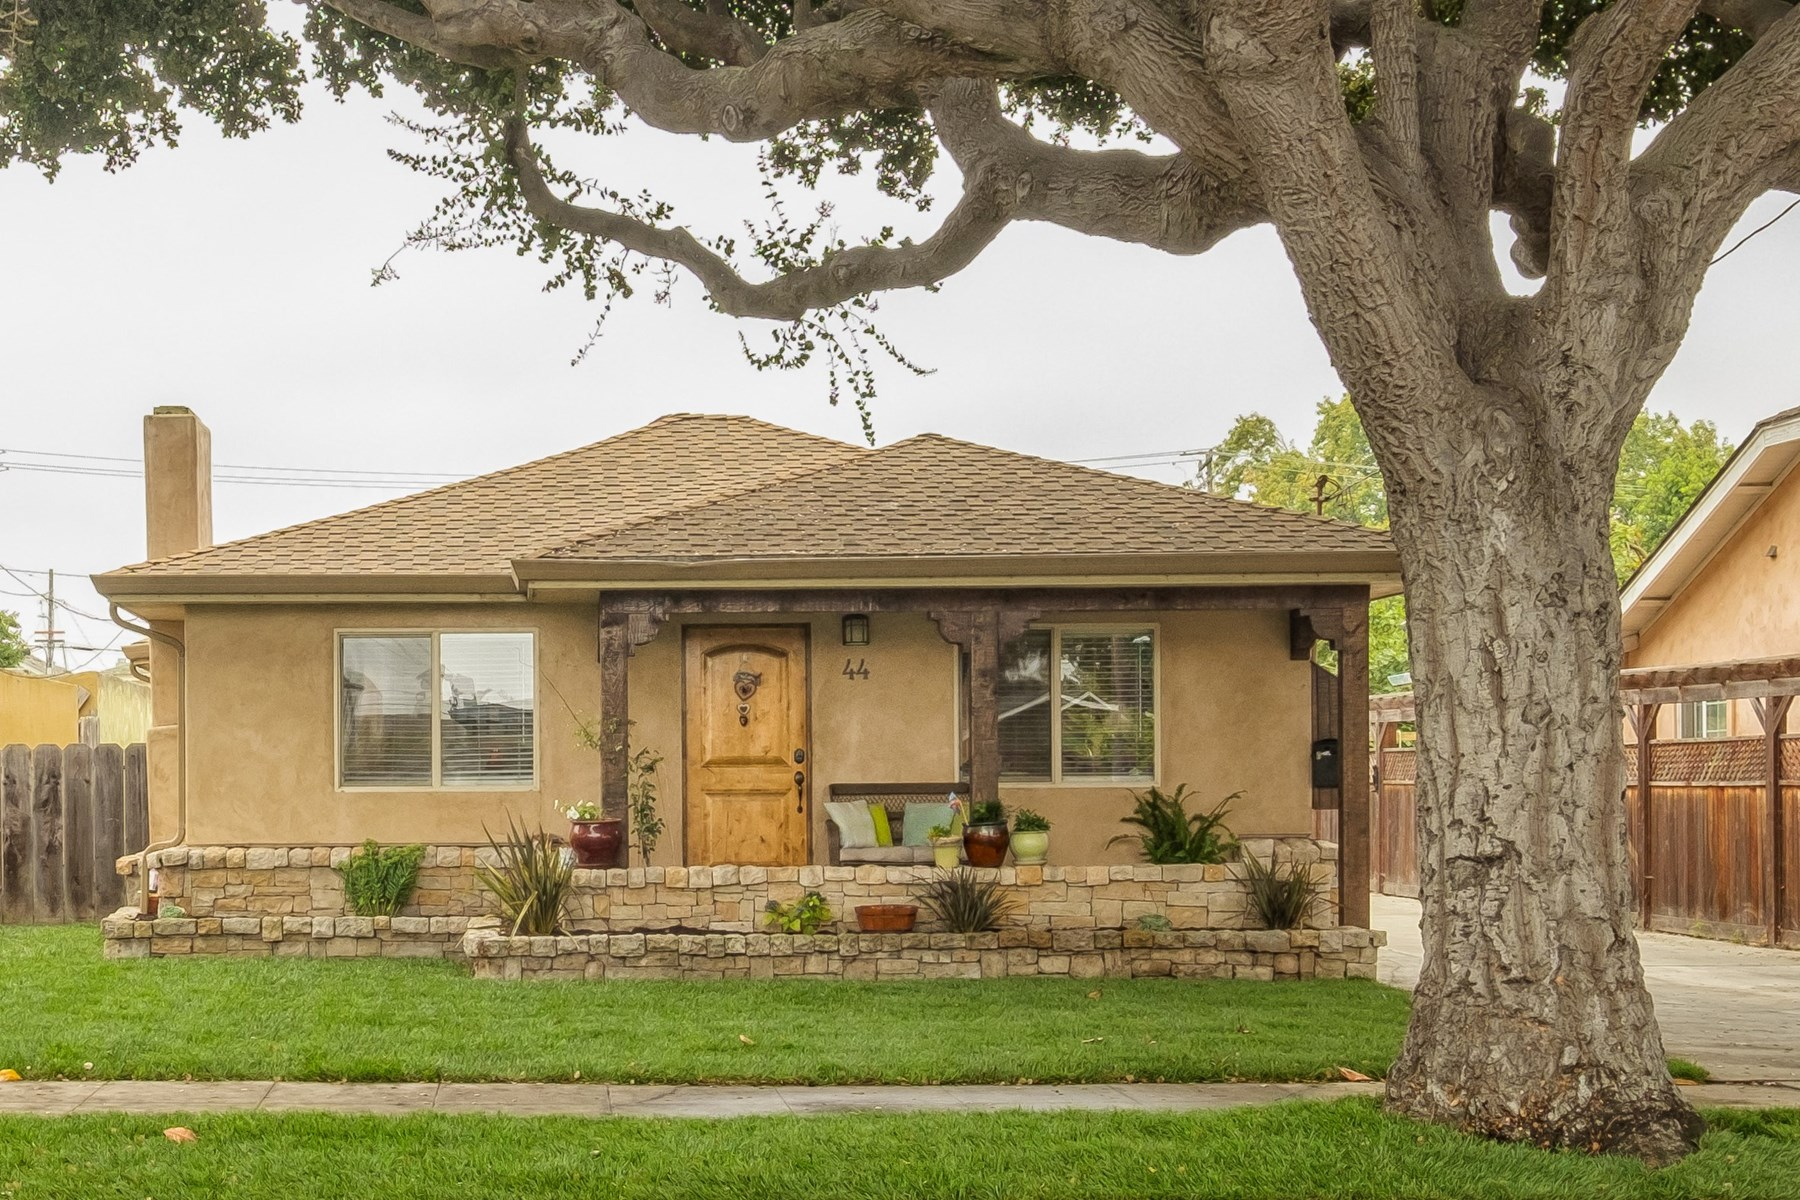 Single Family Home for Sale at Nicely Remodeled Home in Maple Park 44 Oak Street Salinas, California 93901 United States